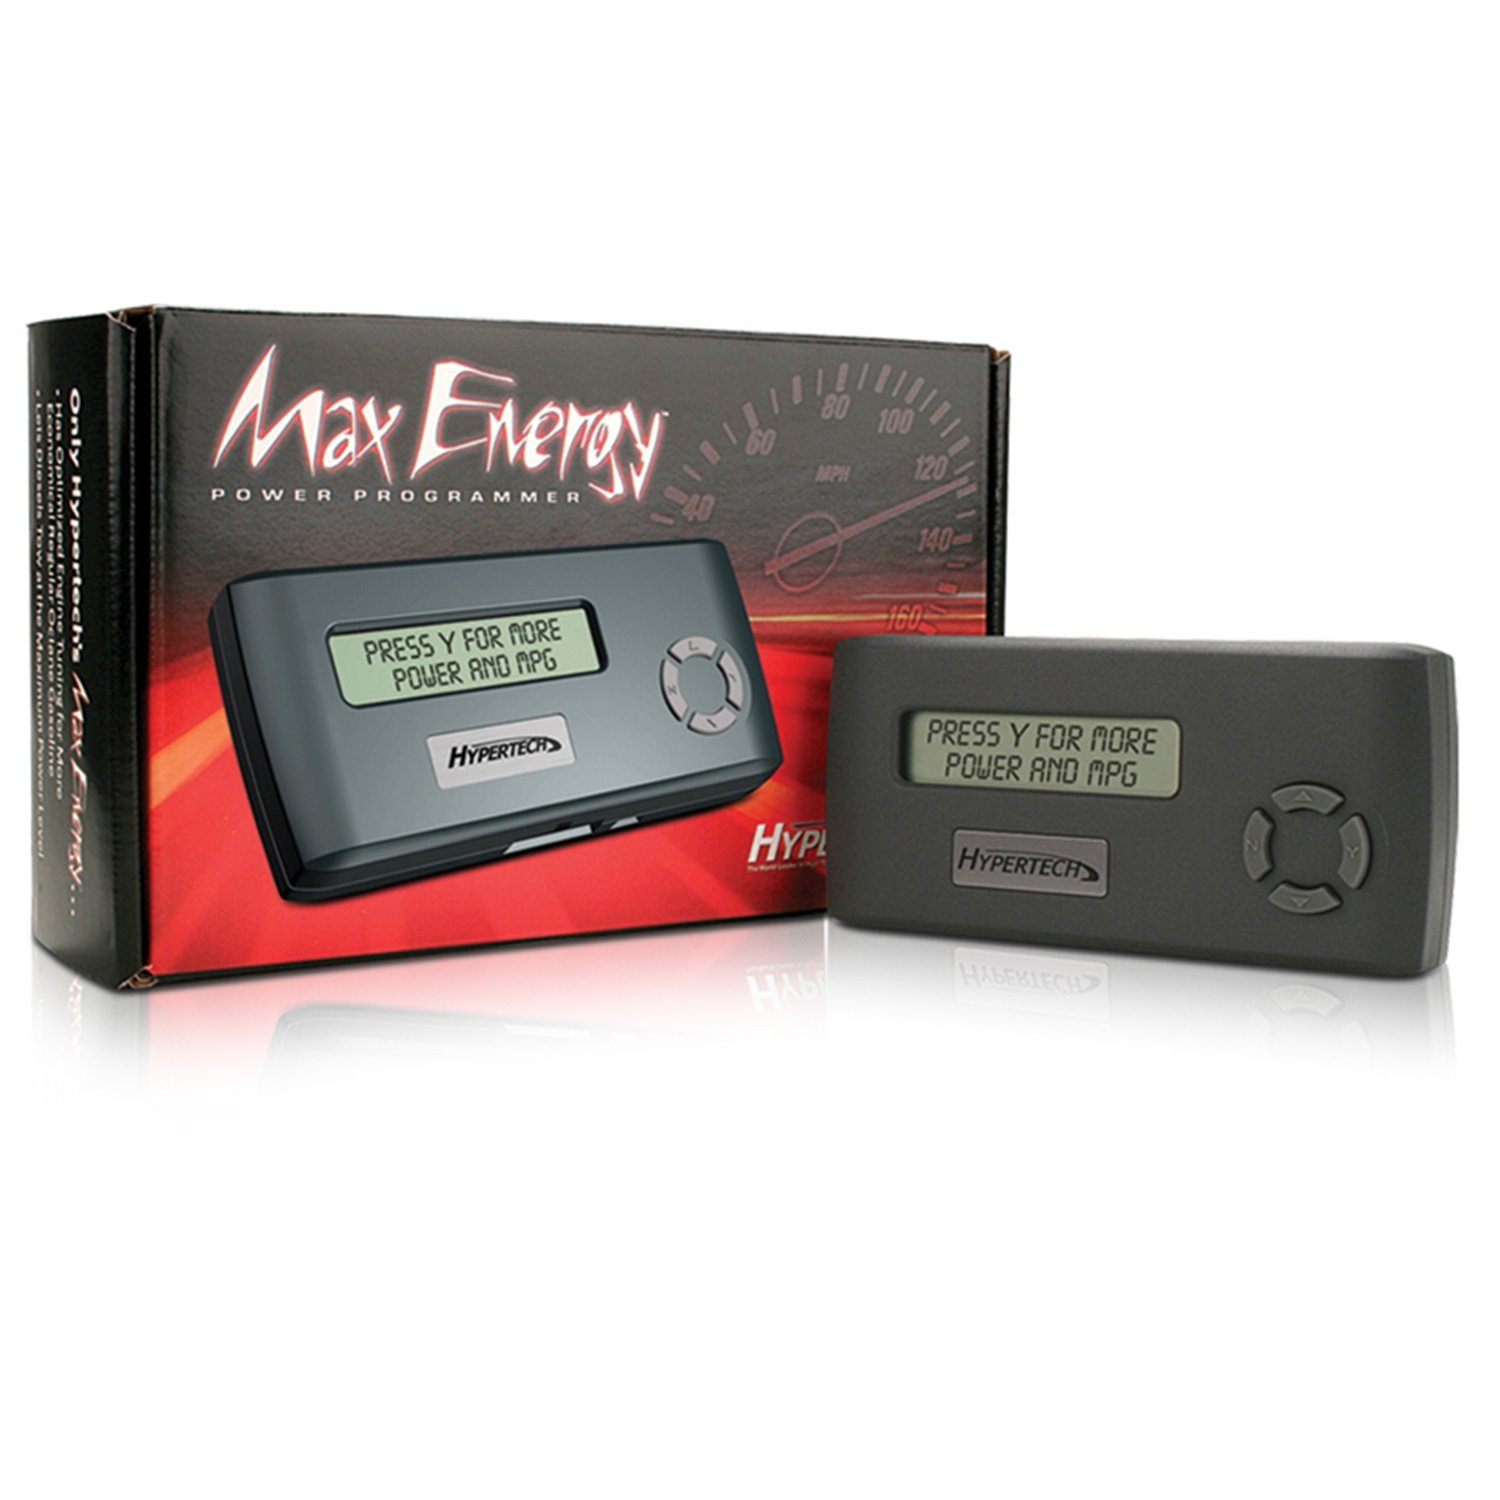 4. Hypertech 52502 Max Energy Power Programmer